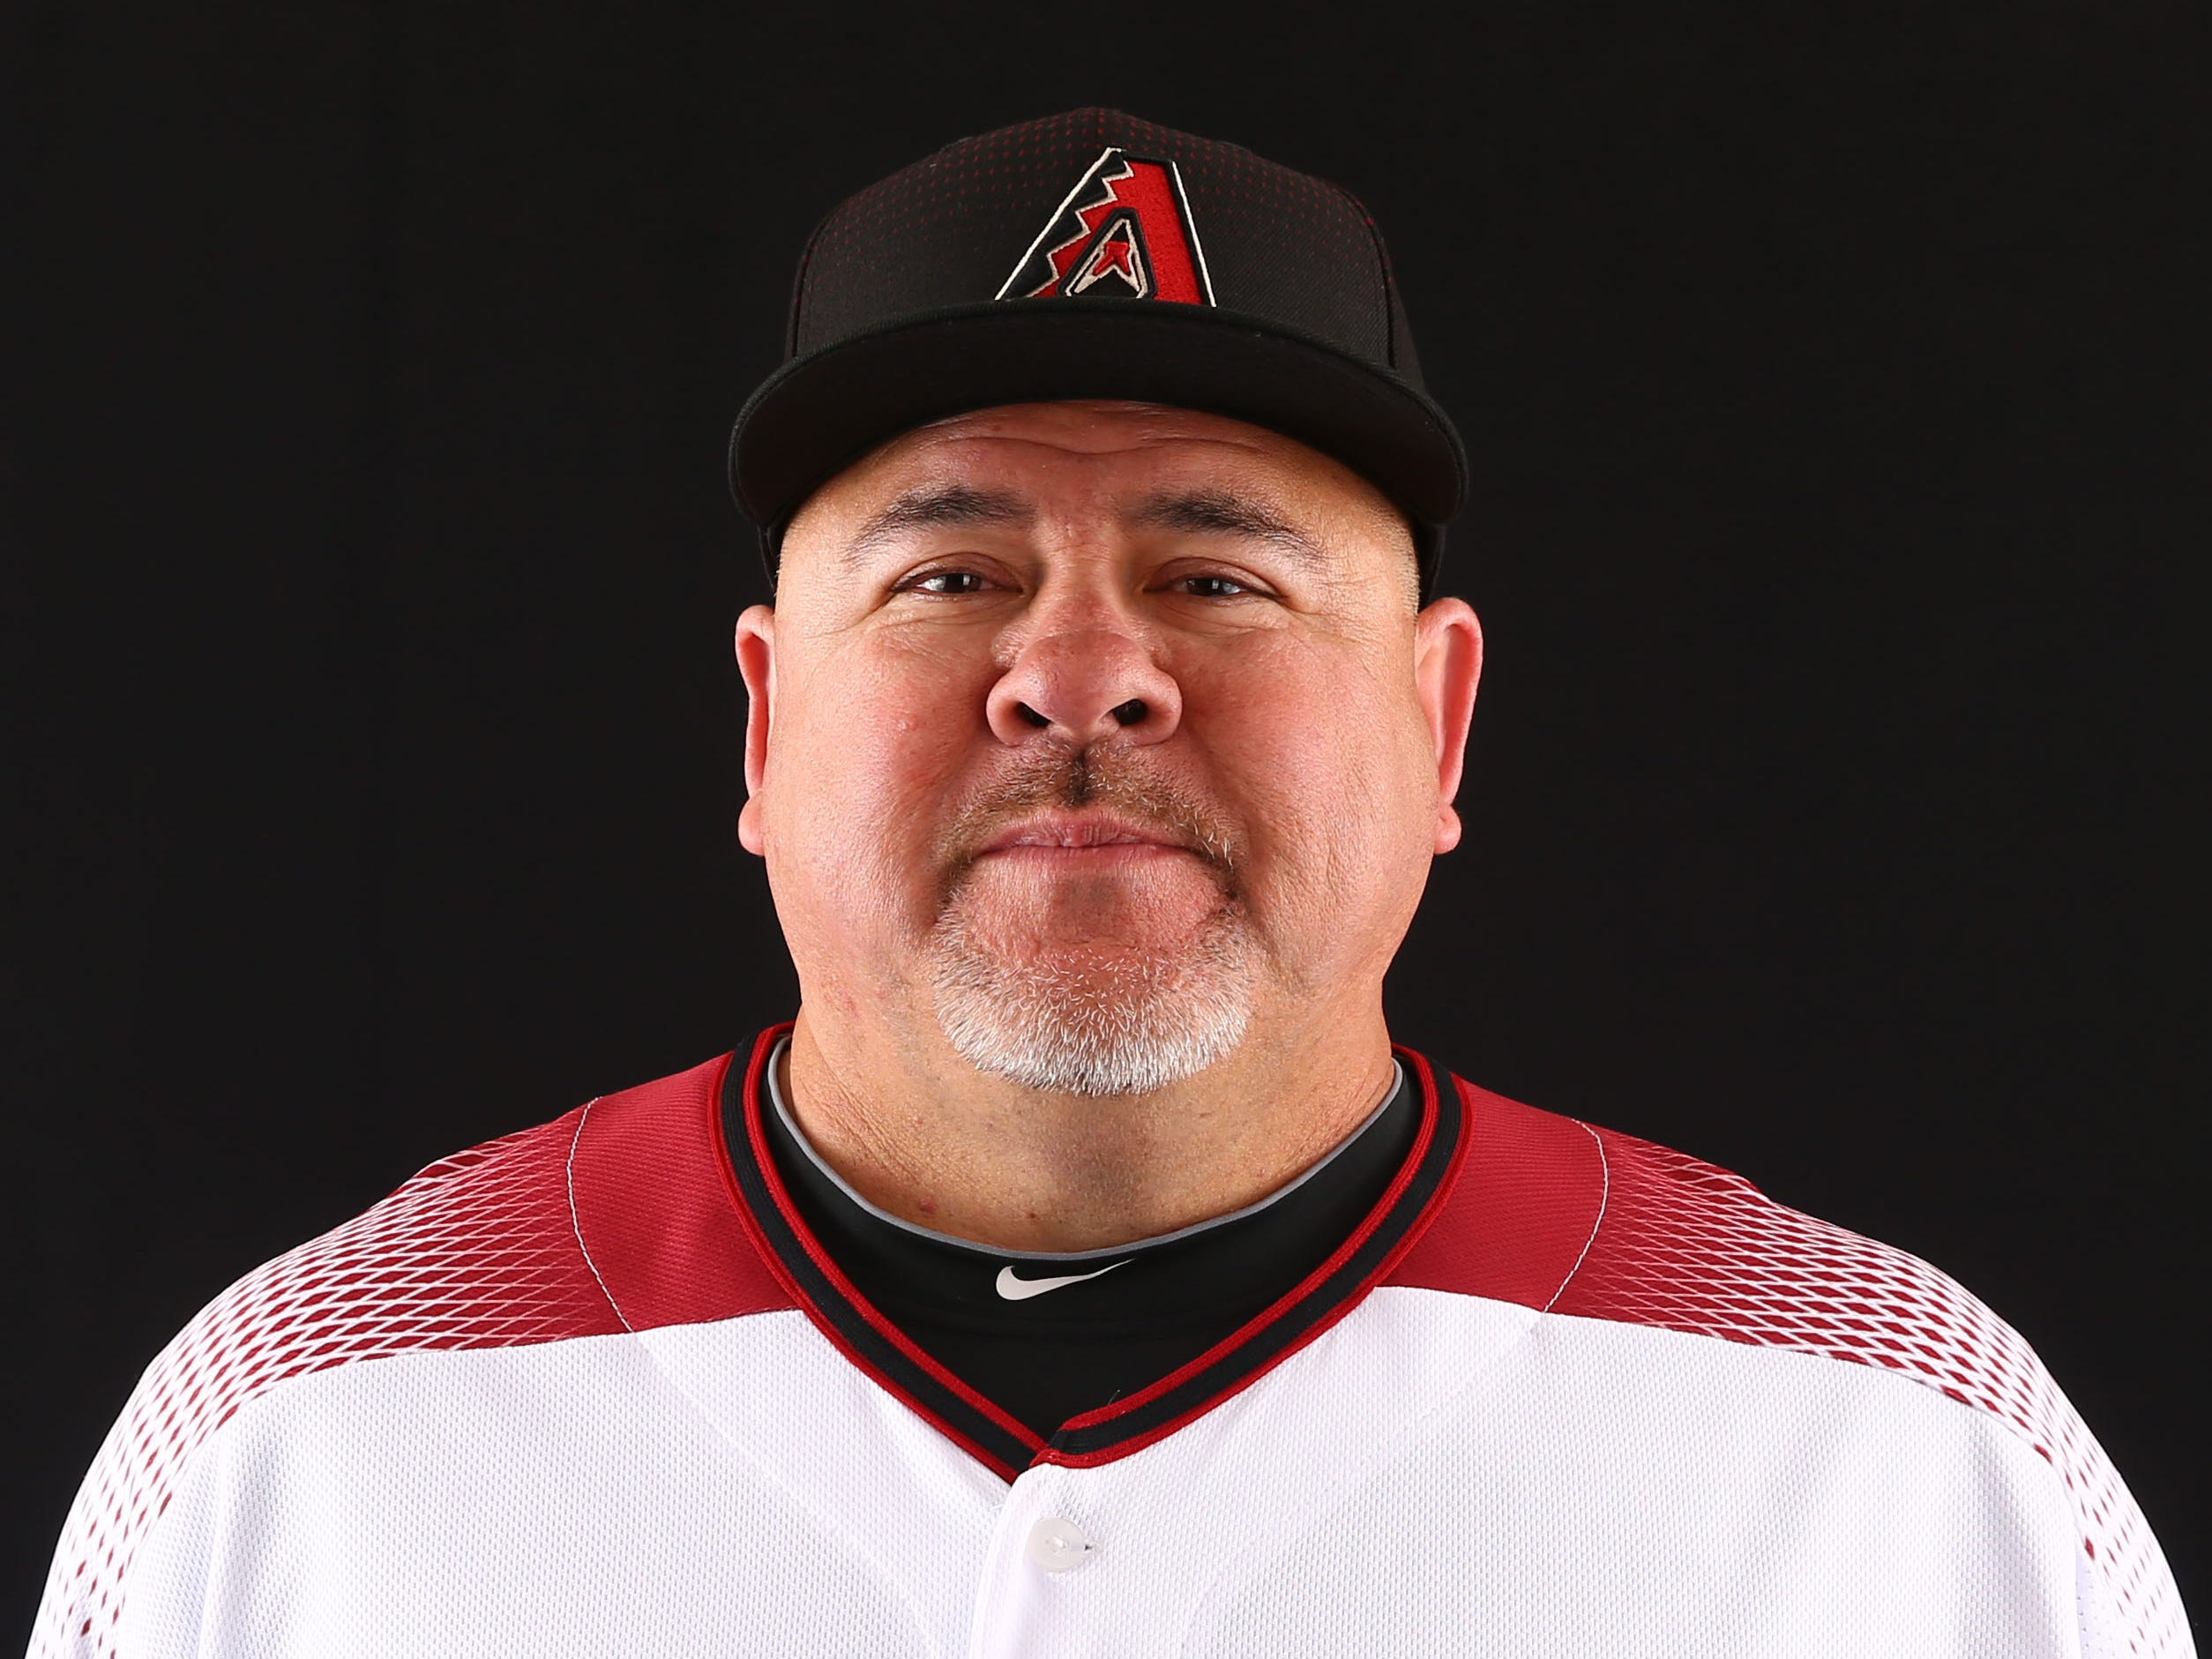 Mike Fetters of the Arizona Diamondbacks poses for a photo during the annual Spring Training Photo Day on Feb. 20 at Salt River Fields in Scottsdale, Ariz.